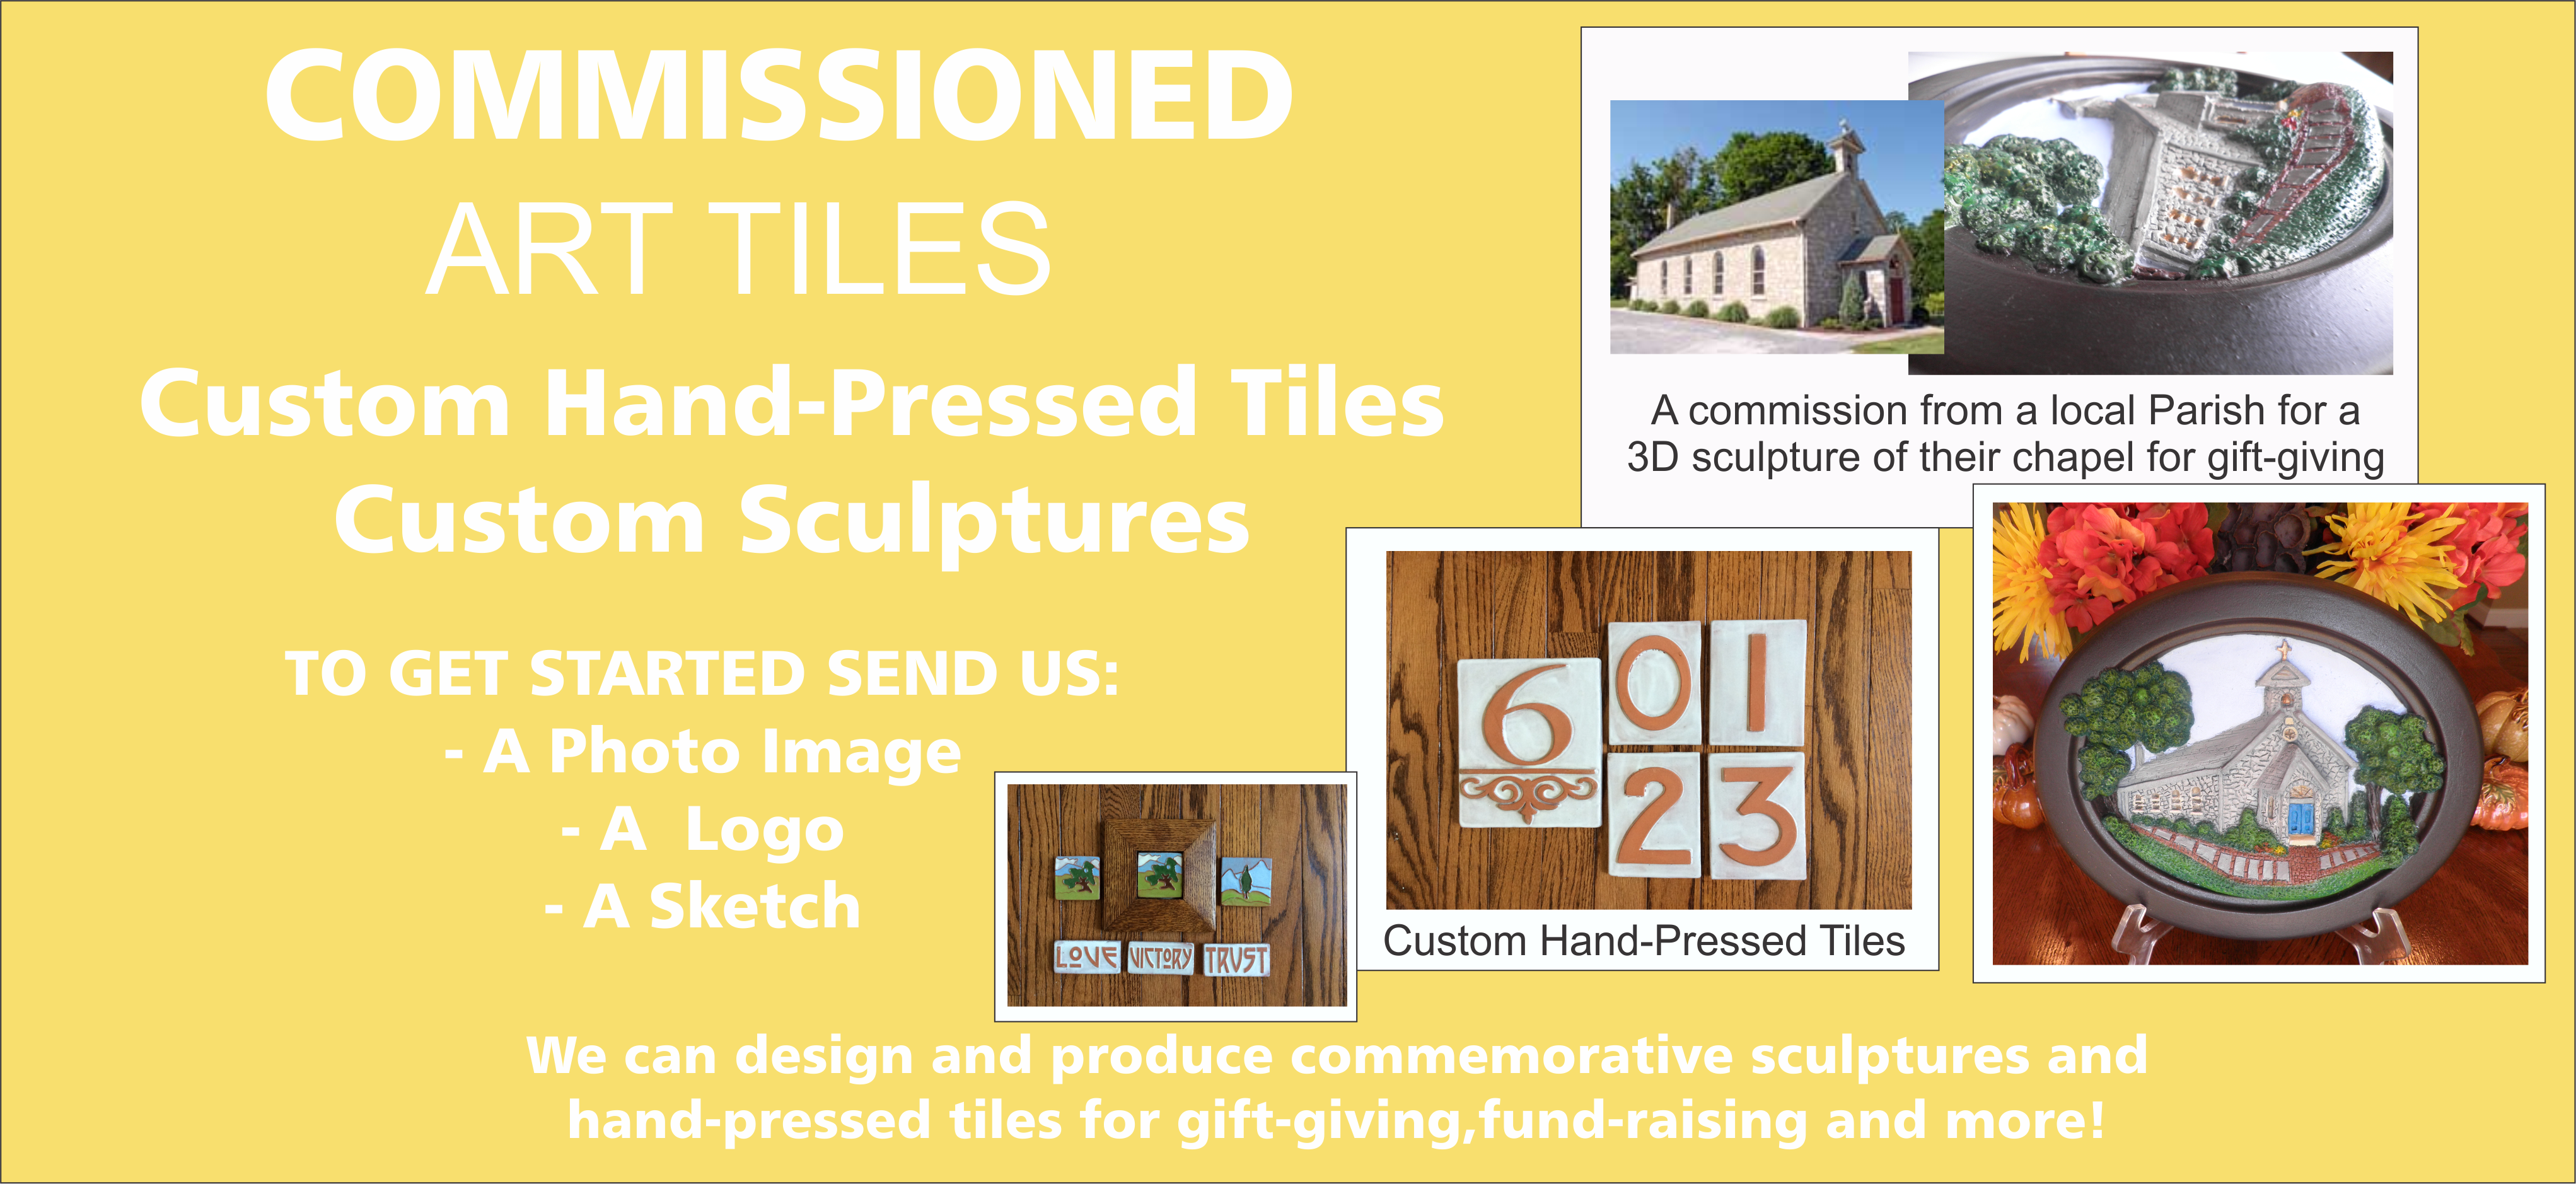 3d-clipart-carossel-image-sculptures-and-tiles.png